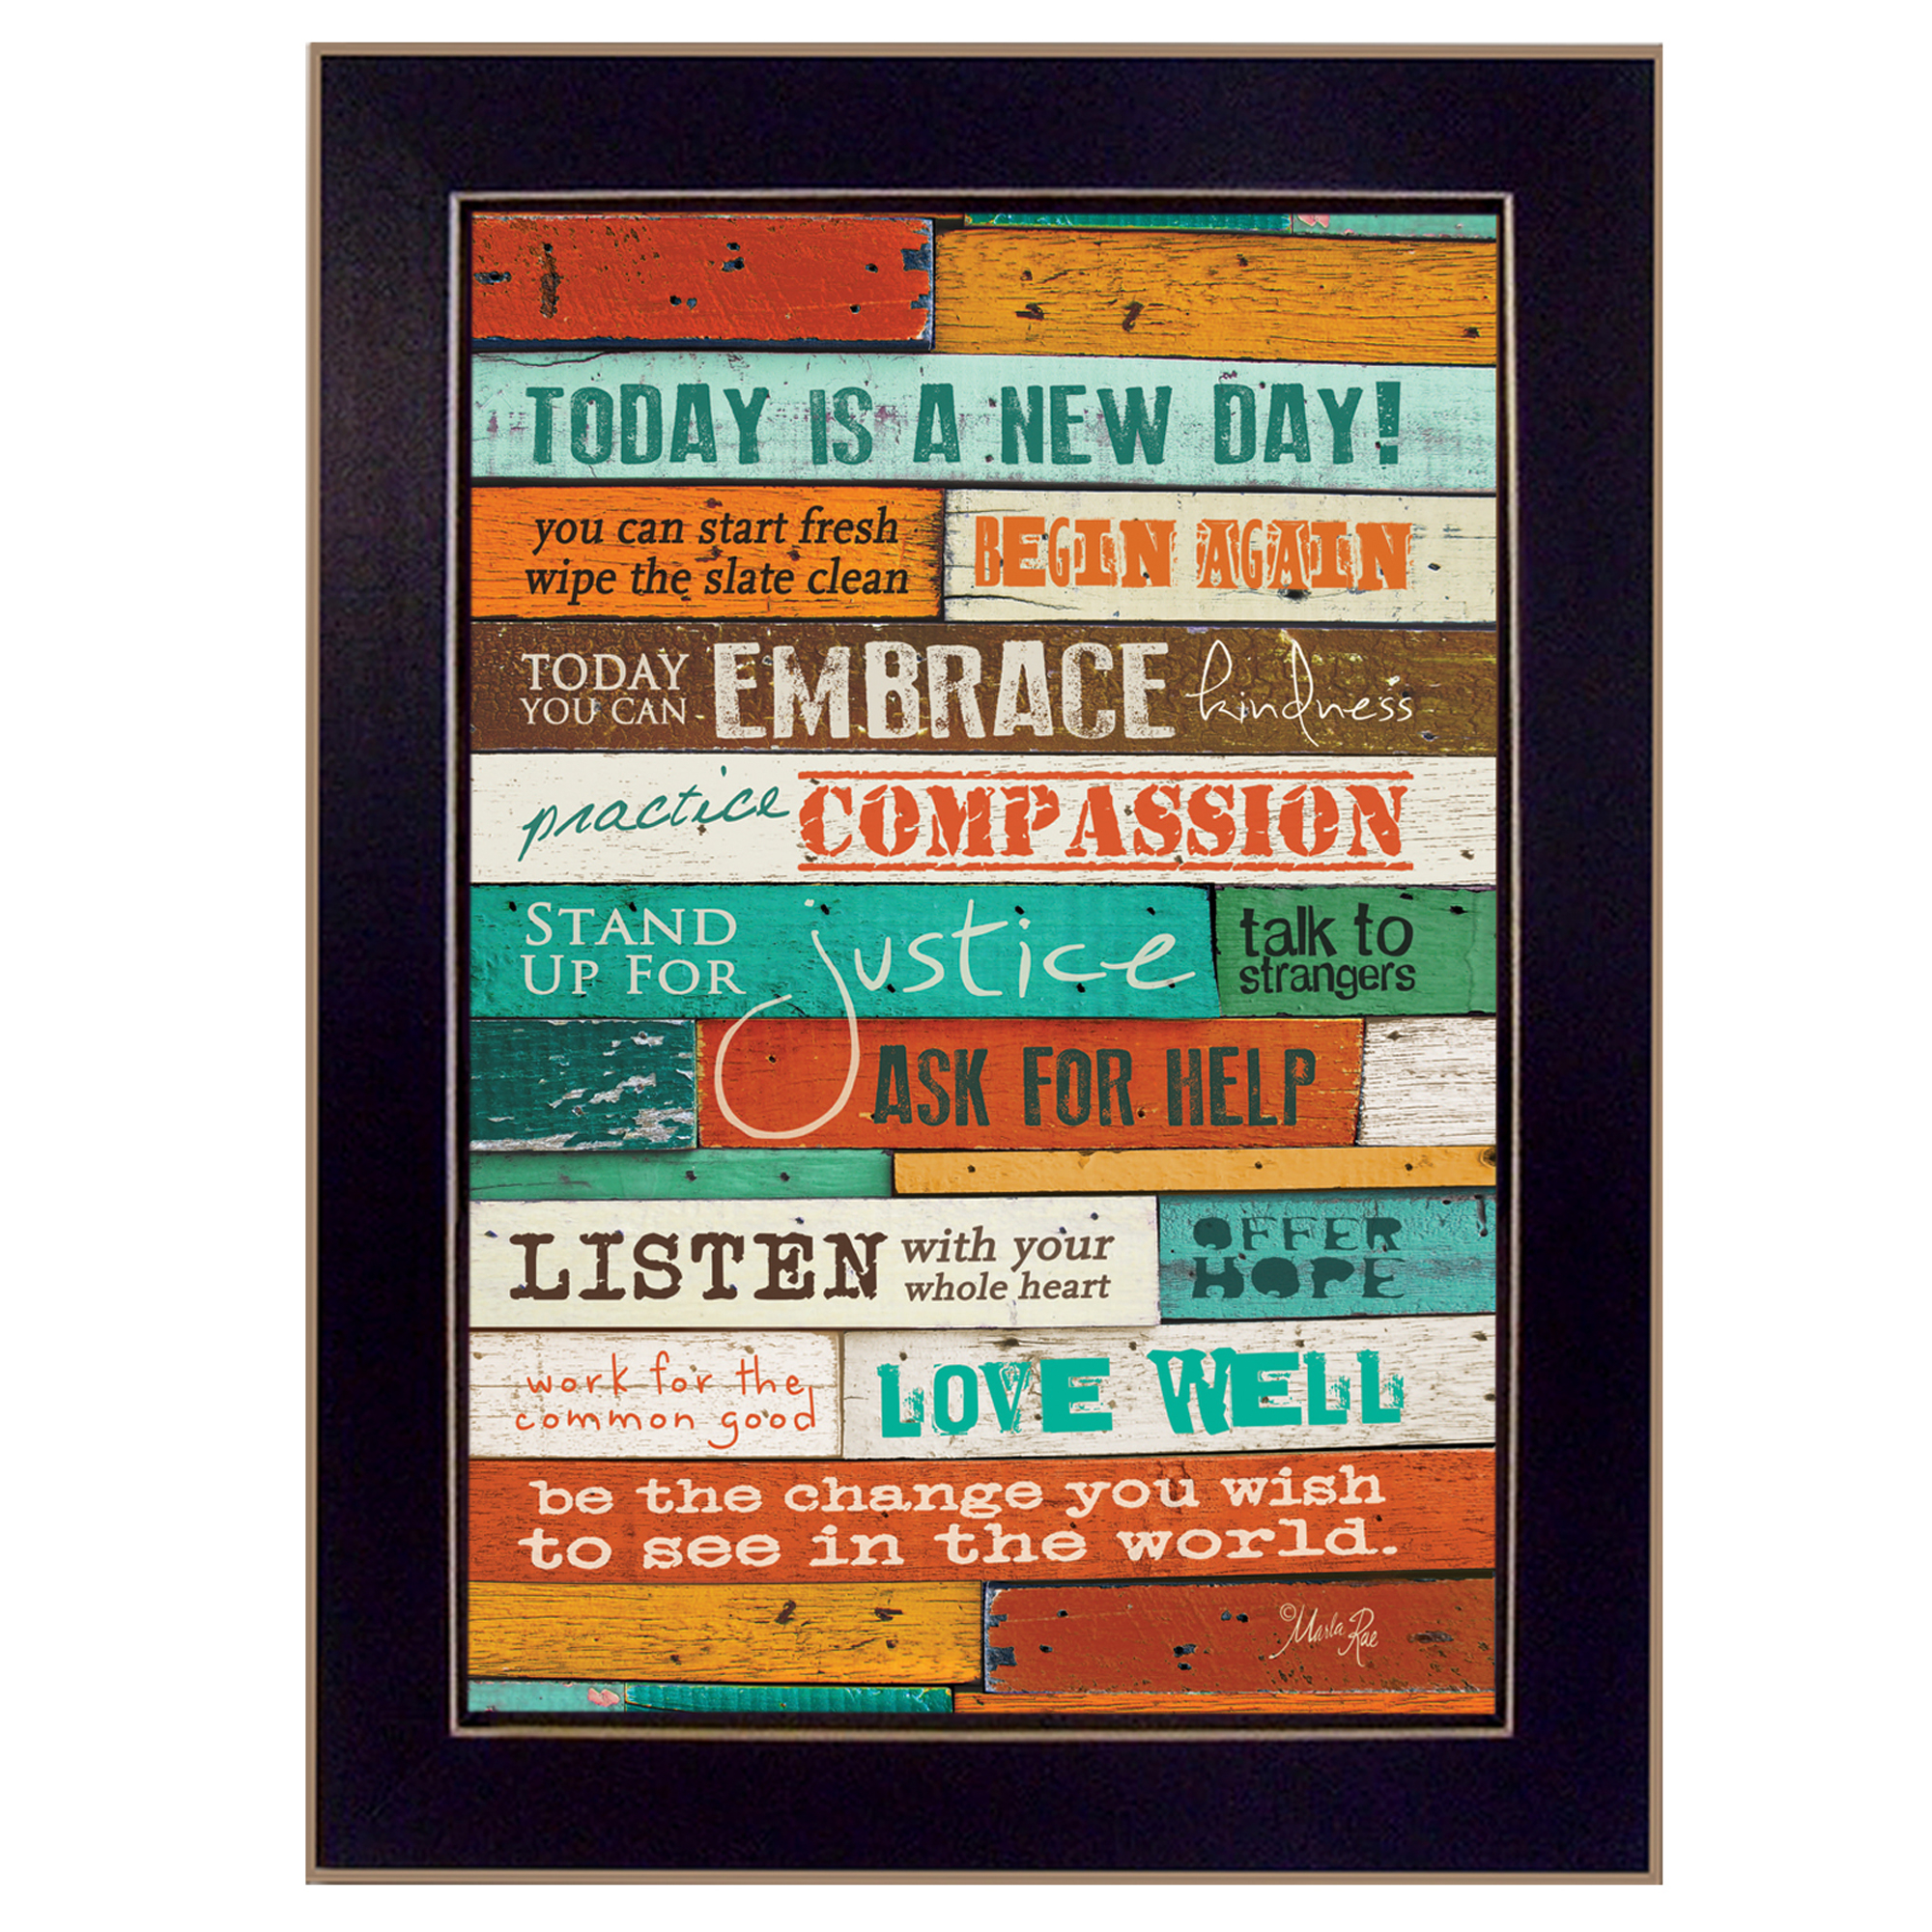 "Ma290C-712 ""A New Day"" is a 10"" x 14"" black framed print by artist Marla Rae. This artwork features a wood plank look and reads today is a new day, ask for help, love well, practice compassion, etc. This totally American Made wall decor item features an attractive frame, a textured canvas like finish so no glass is necessary and is ready to hang. * Made in the USA * Women Owned (Wbe) * Textured Artwork with a 'rolled on' acid free acrylic coating to create a canvas painting effect. No glass is necessary. * UV protectant coating protects artwork from fading. * MDF moulding adds natural beauty to the framed art. Frame is keyholed for ease of hanging."